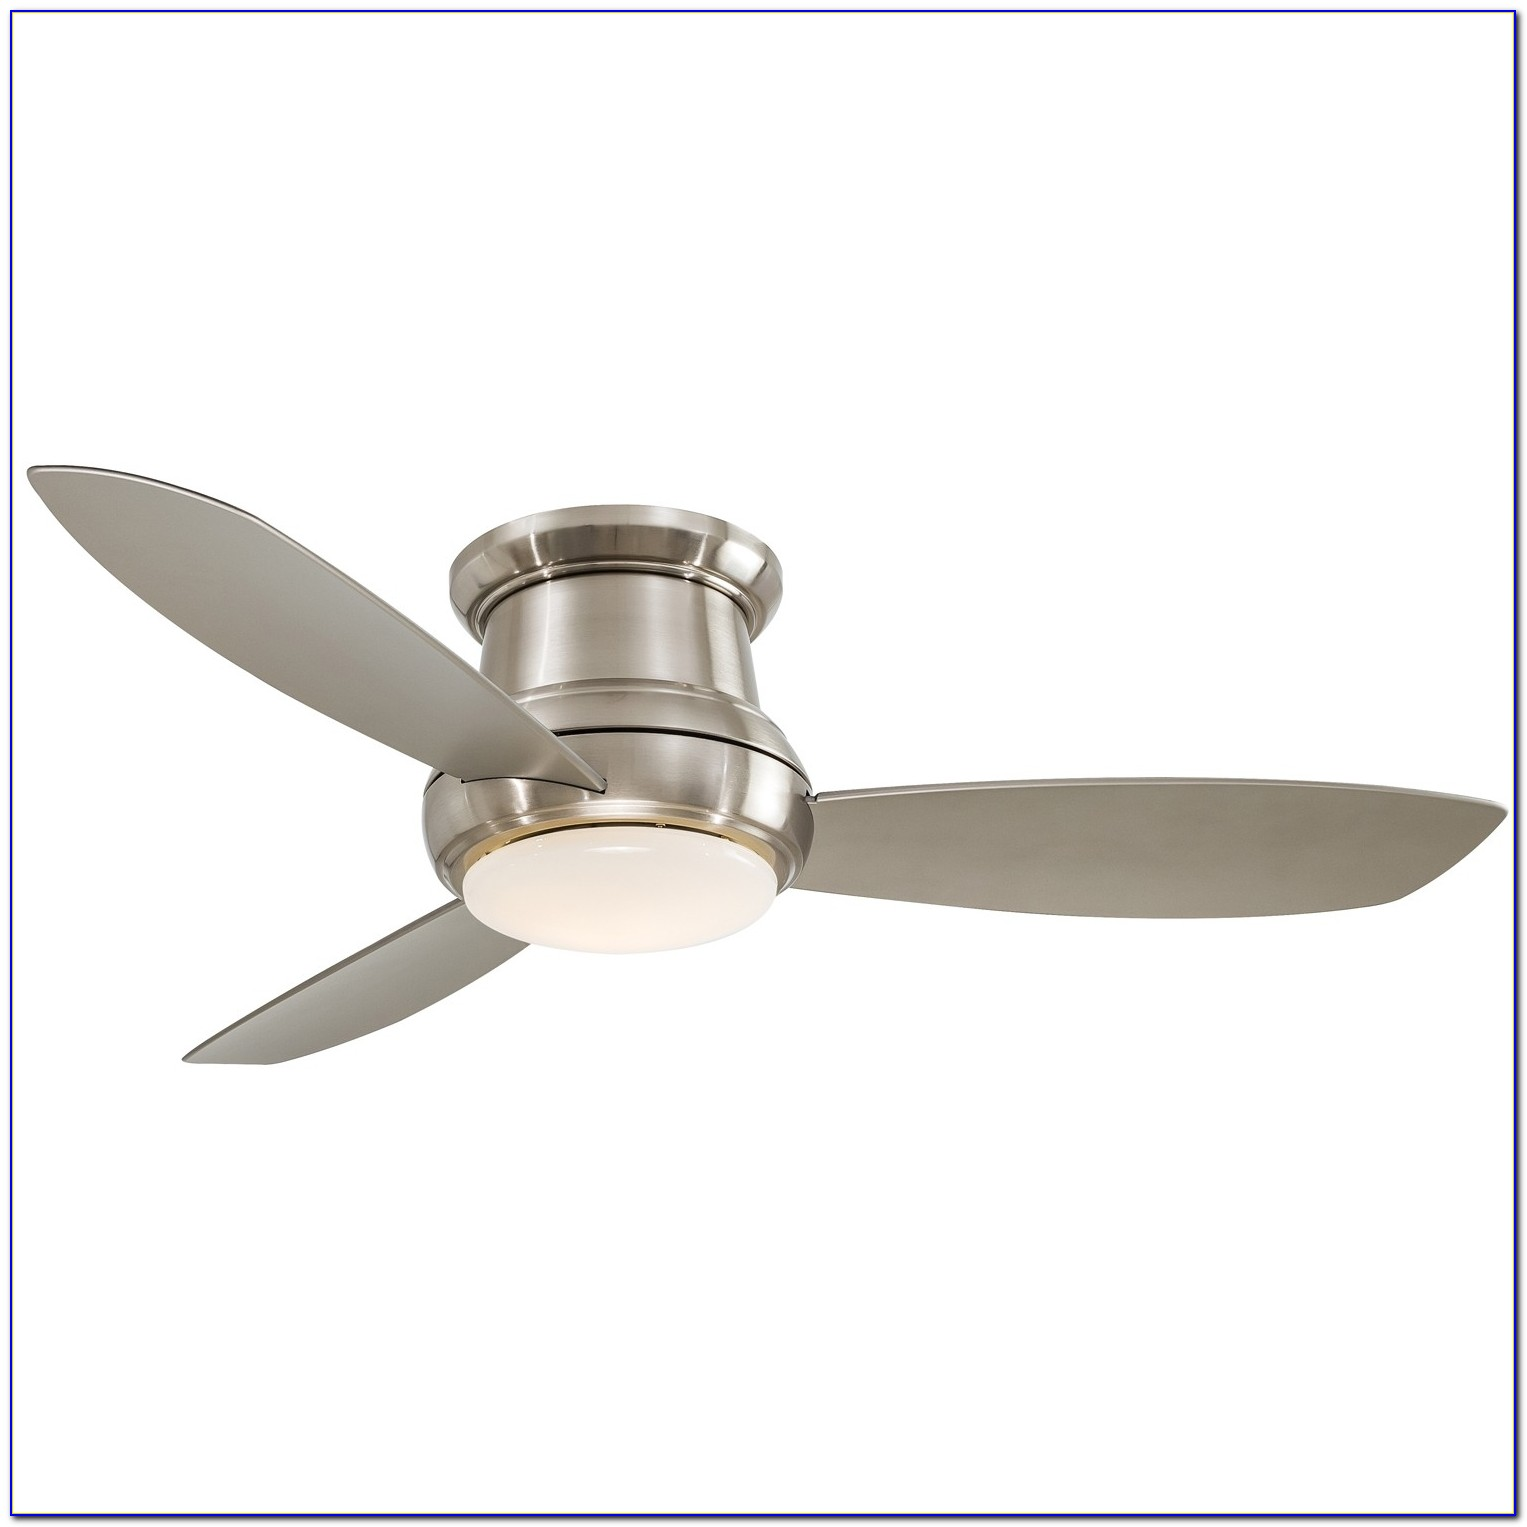 Flush Mount Outdoor Ceiling Fans Without Lights